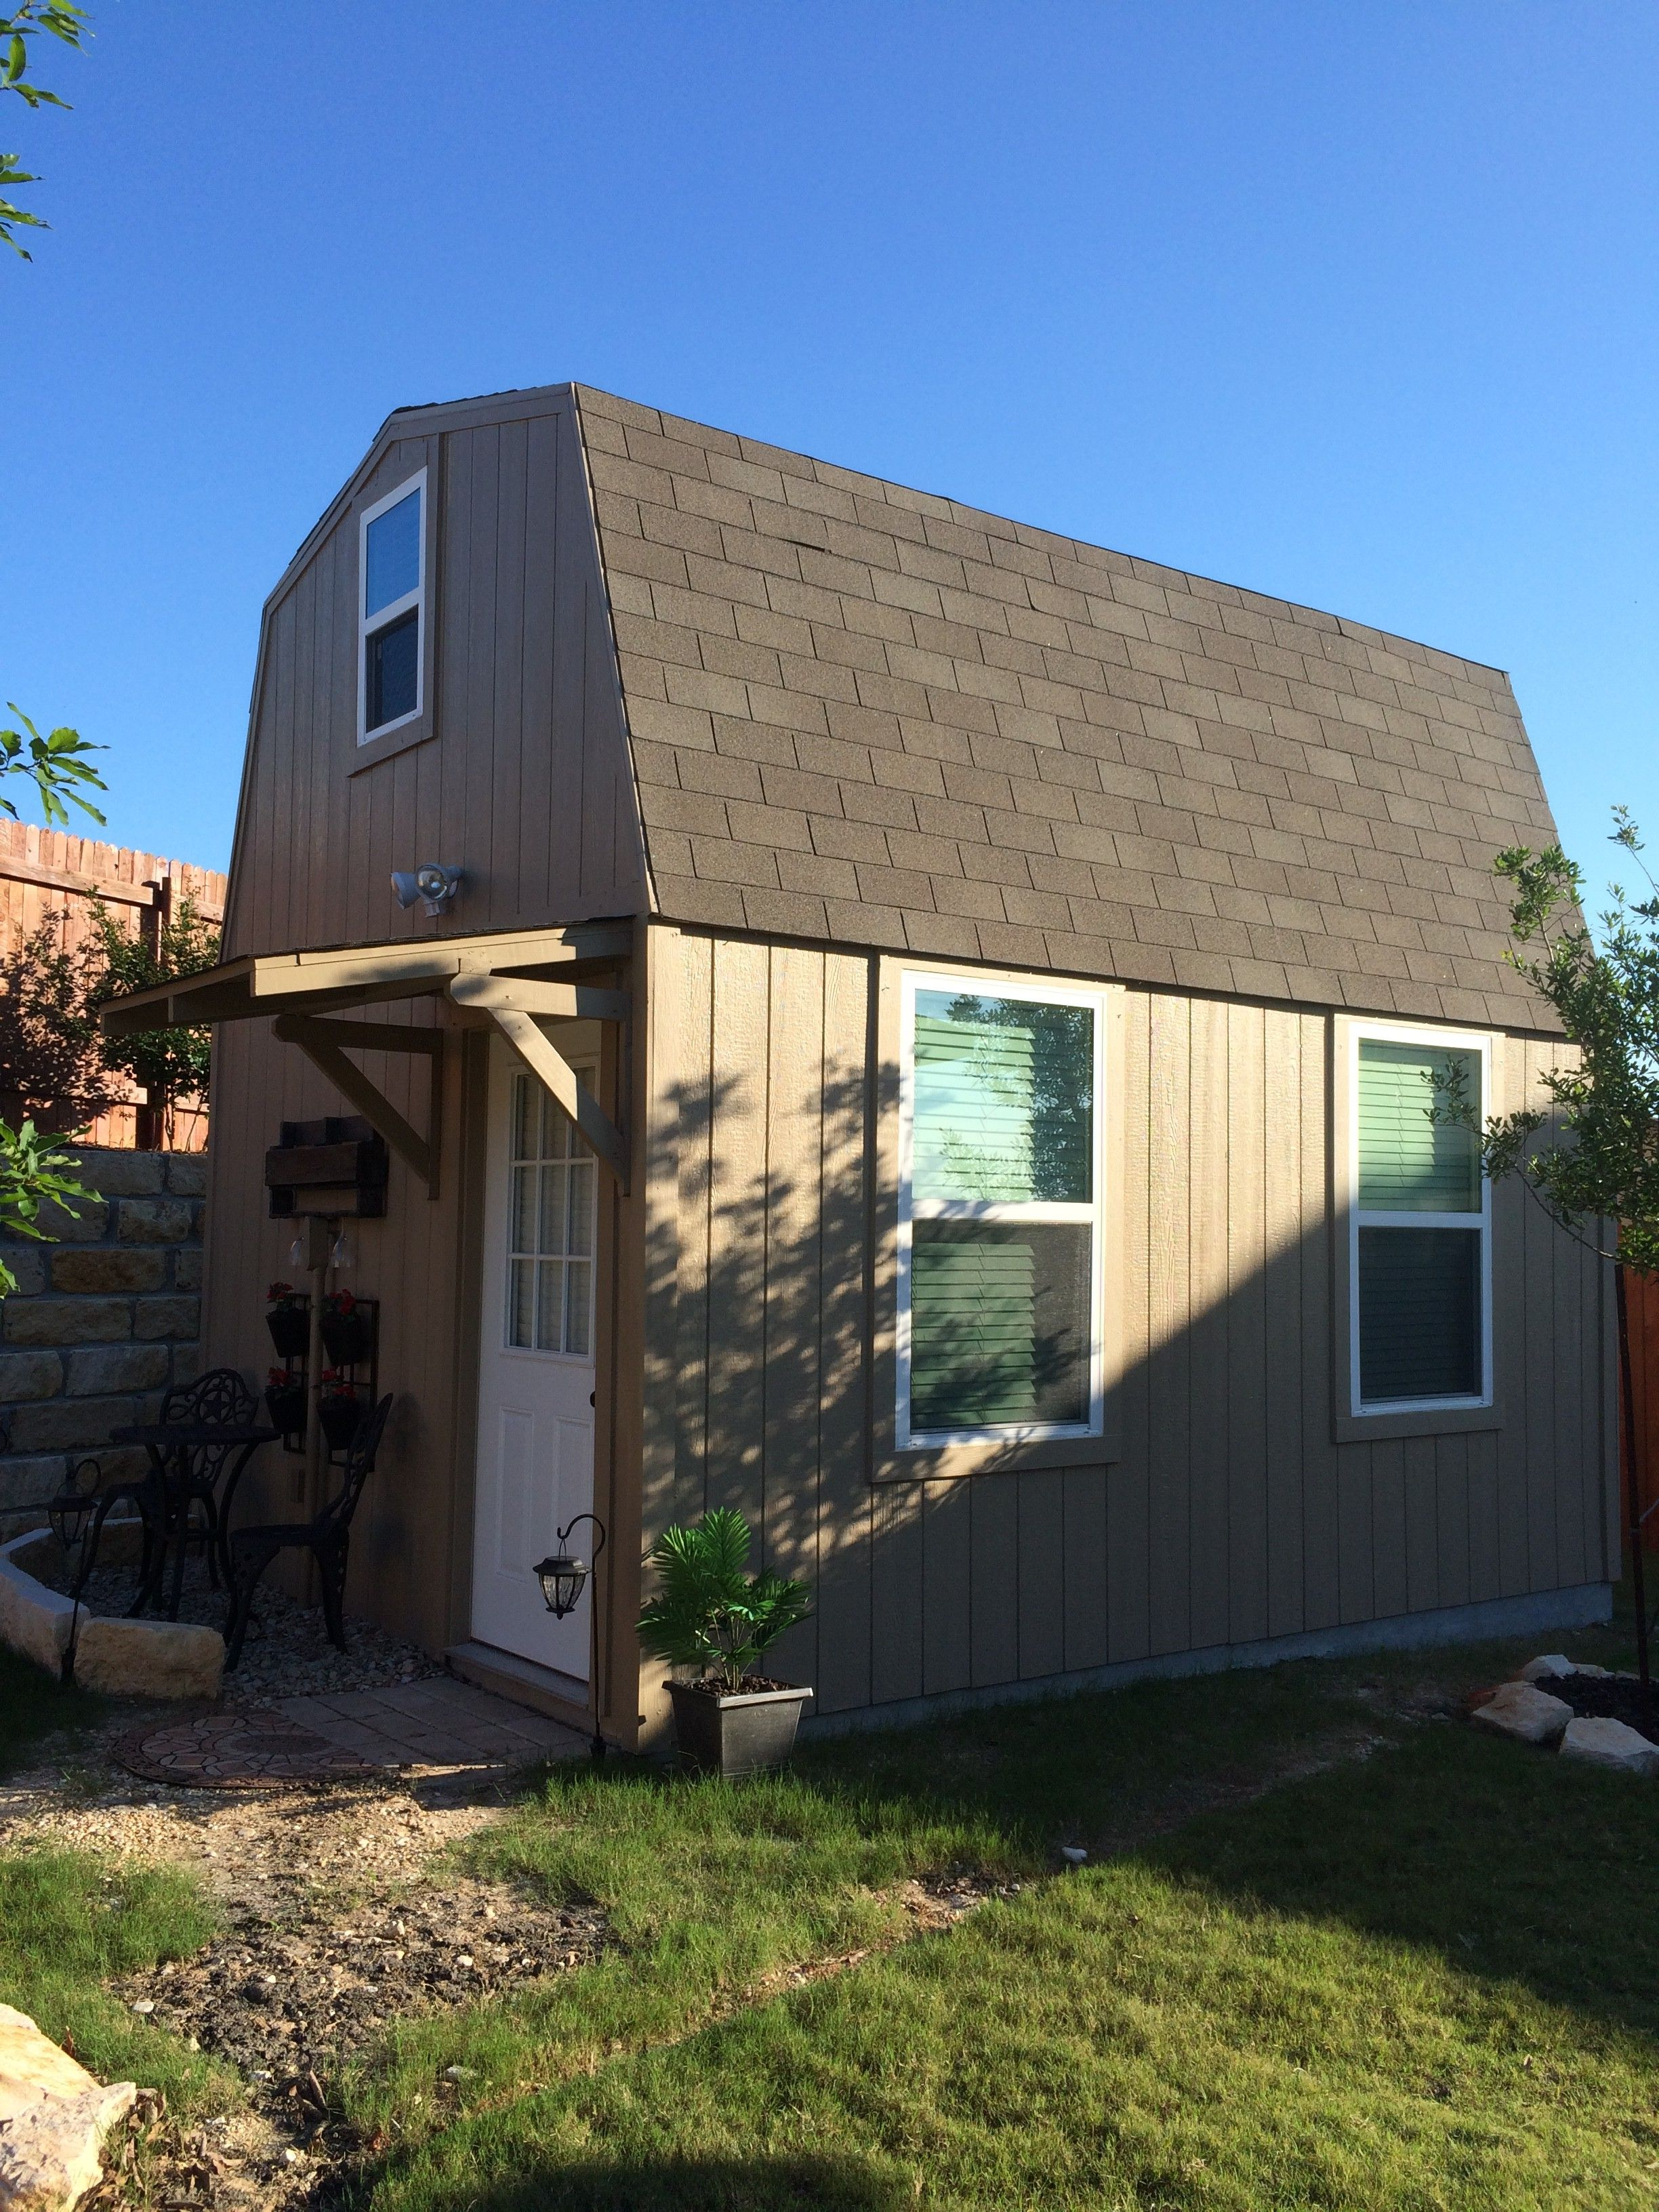 Tiny Home To Be Moved - Tiny House for Sale in Austin, Texas | RVs